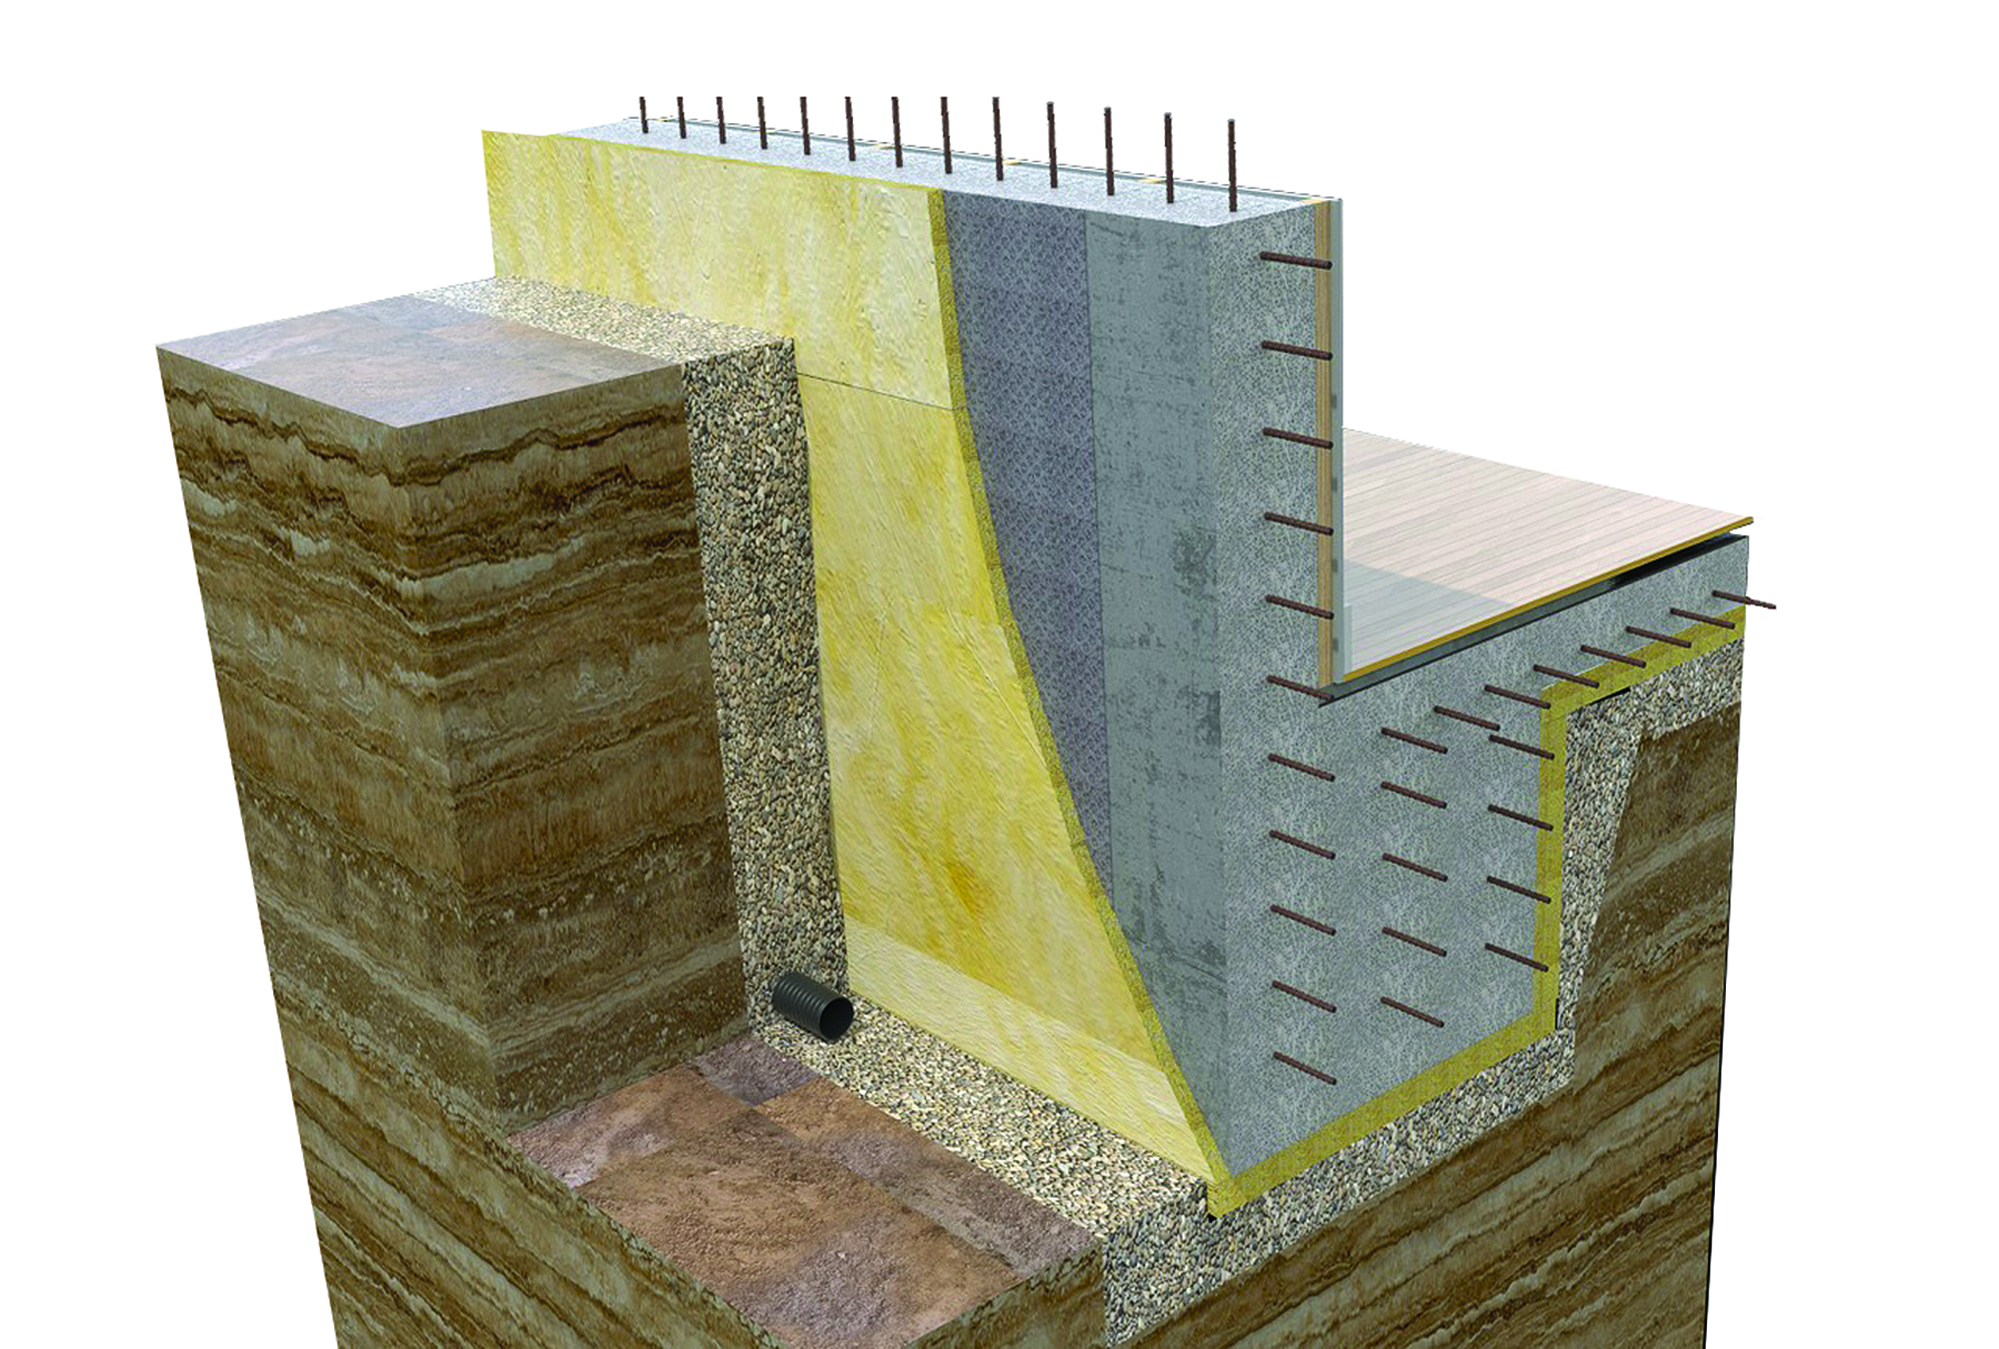 Insulating Foundations In Earthquake Country Jlc Online